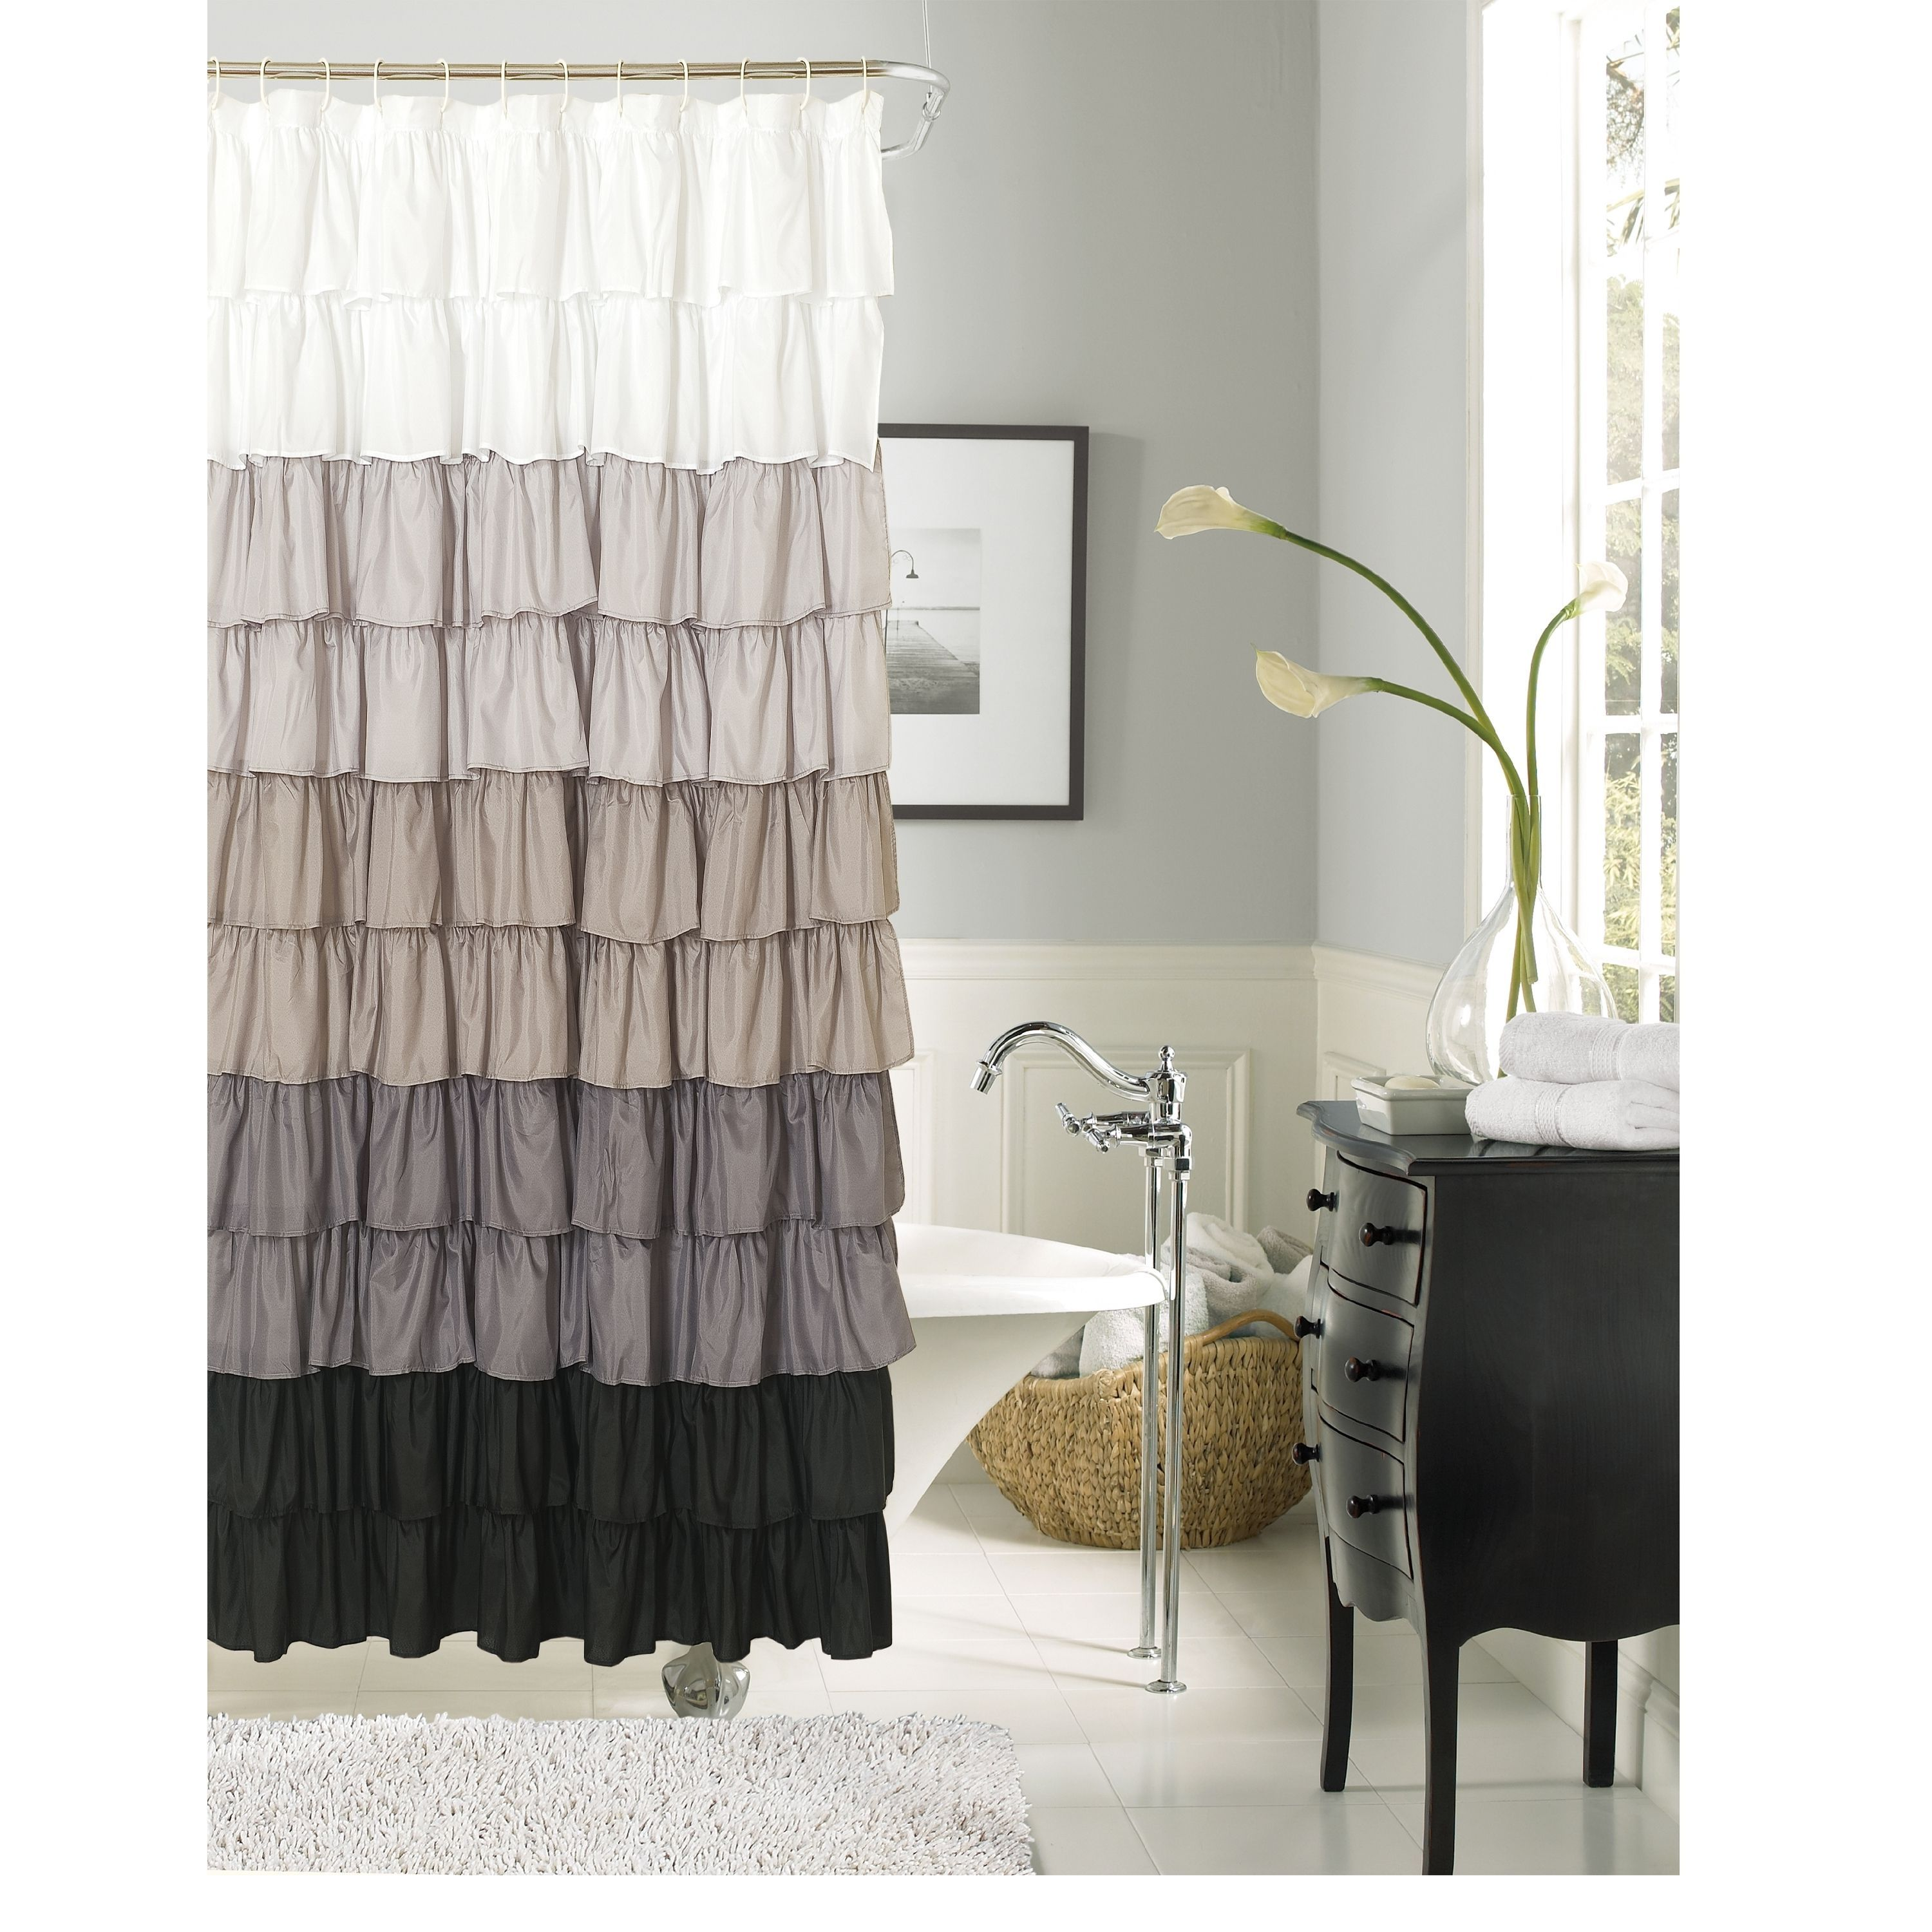 Flamenco Ruffle Shower Curtain Products Ruffles And To The